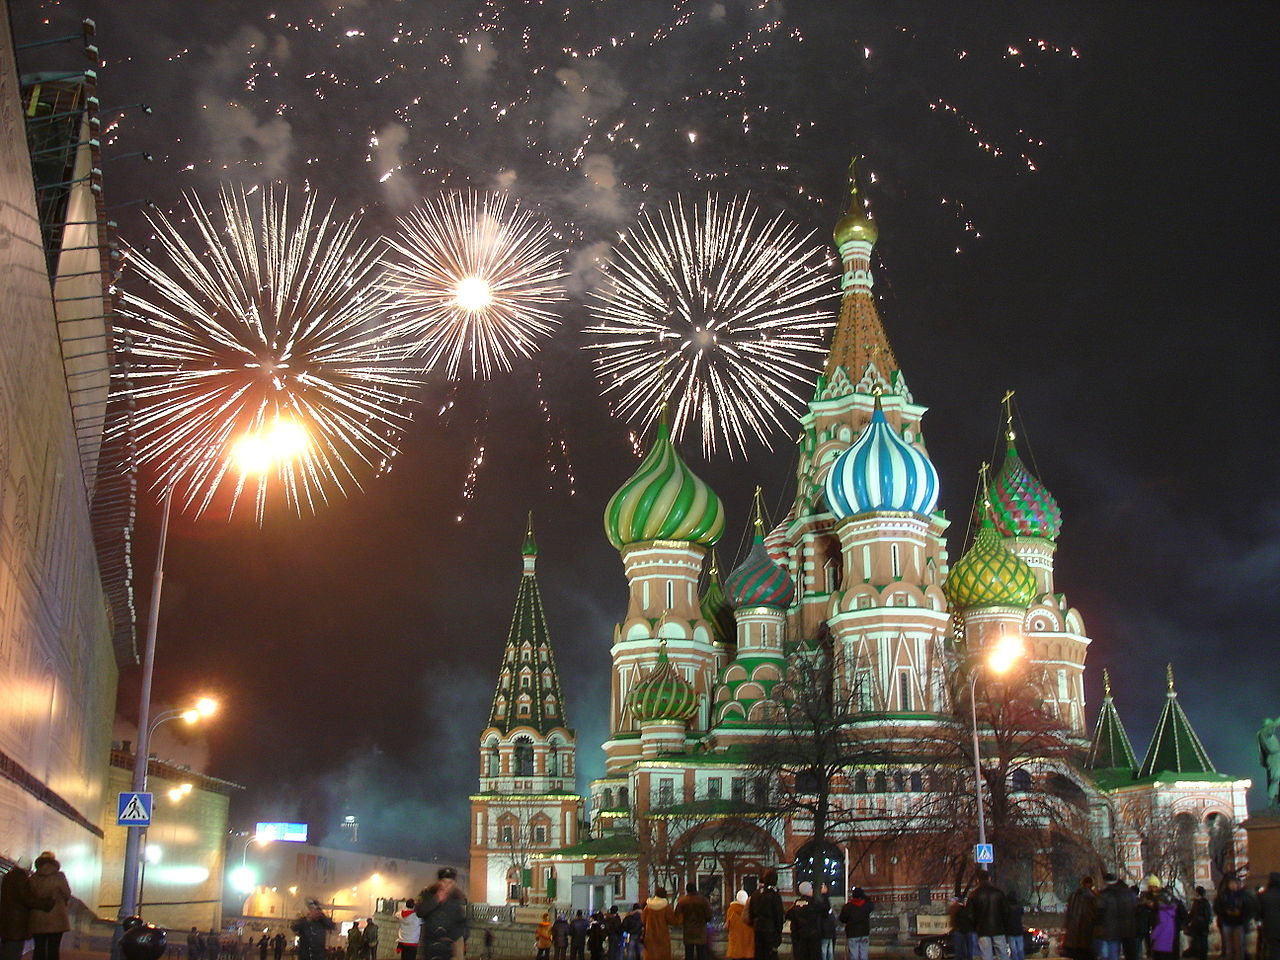 10 Top Cities With The Best New Year's Eve Celebrations- Moscow red square